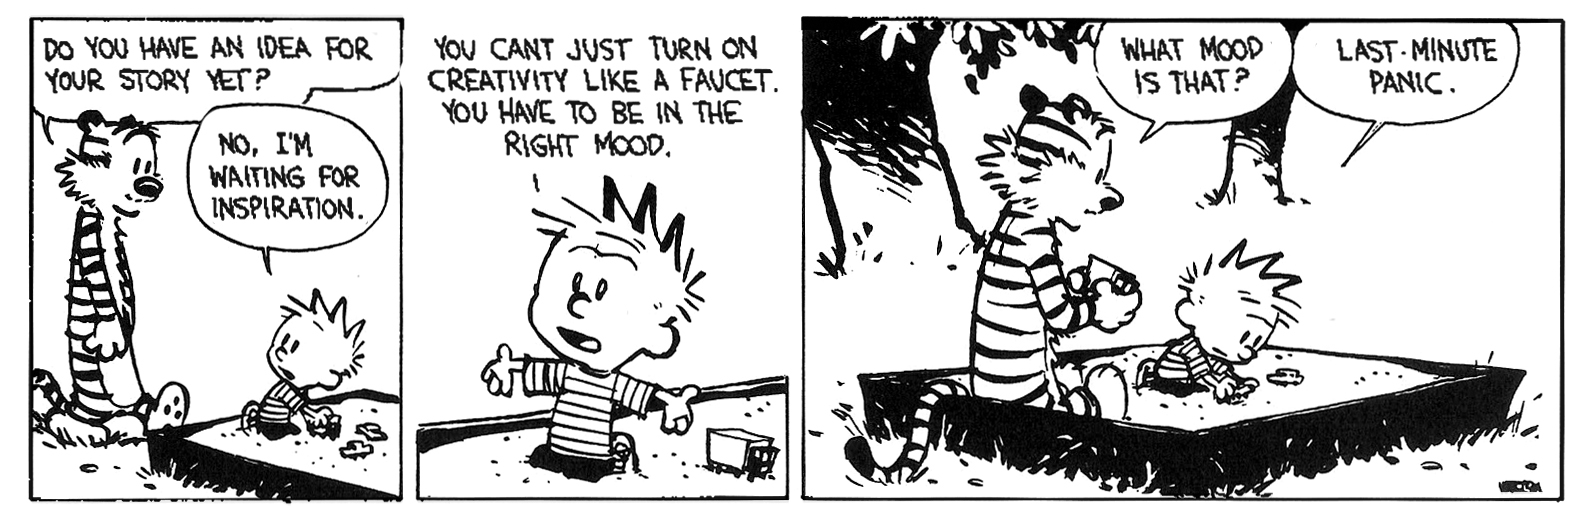 the battle to create on a deadline calvinandhobbes